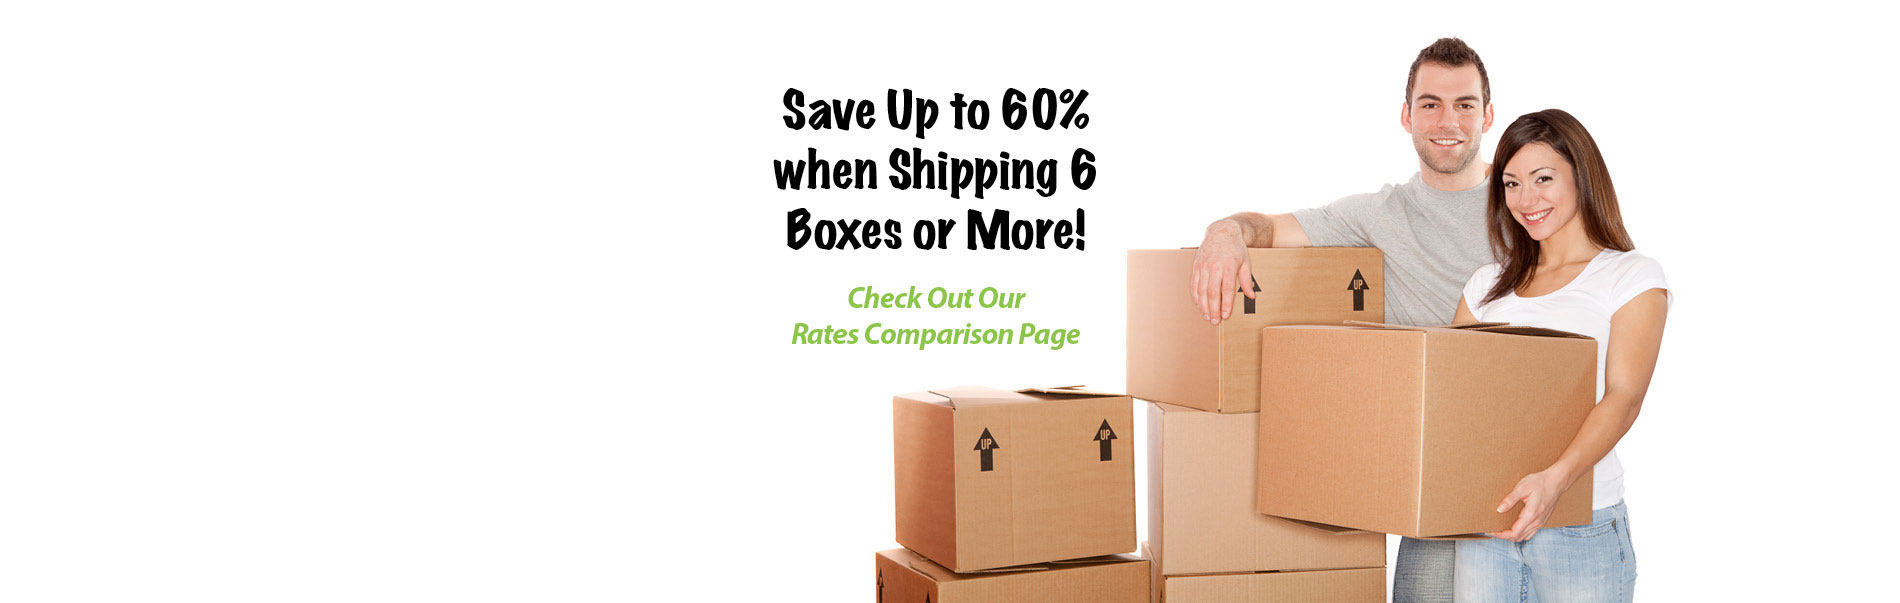 Greyhound Shipping Quote >> Greyhound Shipping Ship Boxes By Bus With Package Express